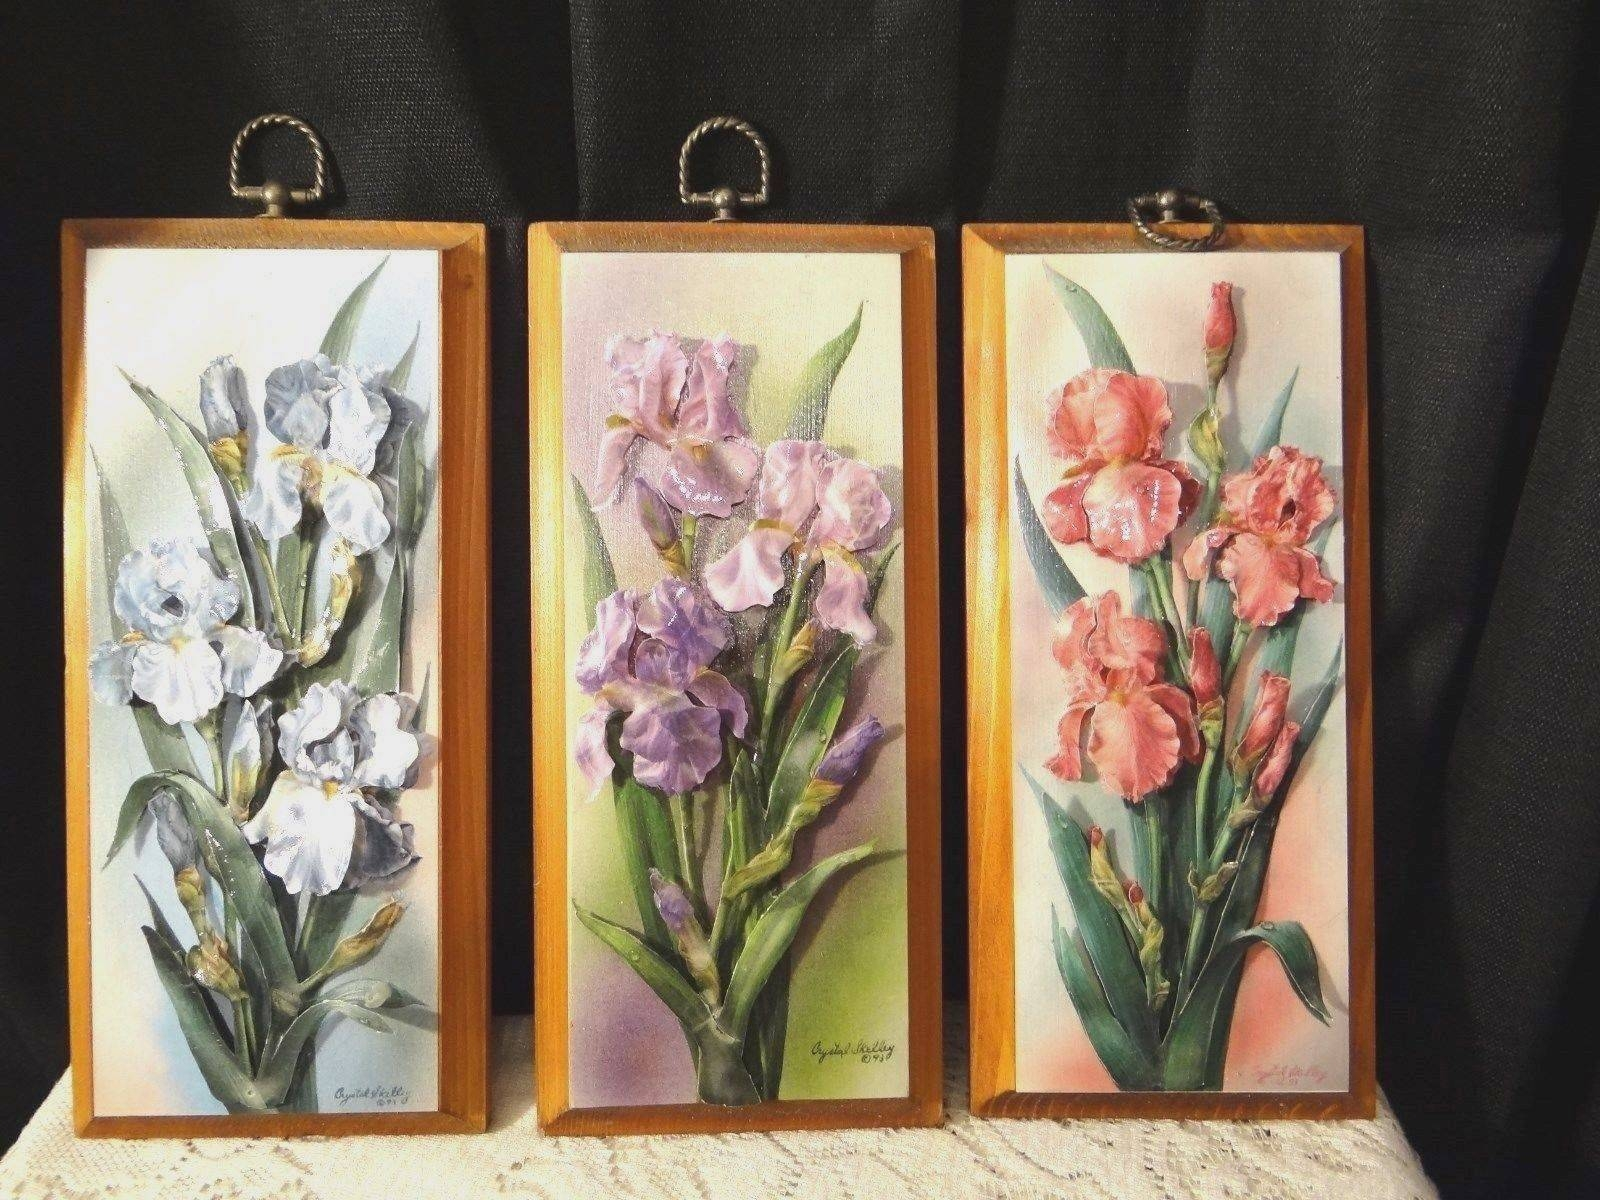 Vintage Wall Art Iris Flowers Decoupage On Wood Plaque 3d Pictures Regarding 2017 Decoupage Wall Art (View 13 of 30)